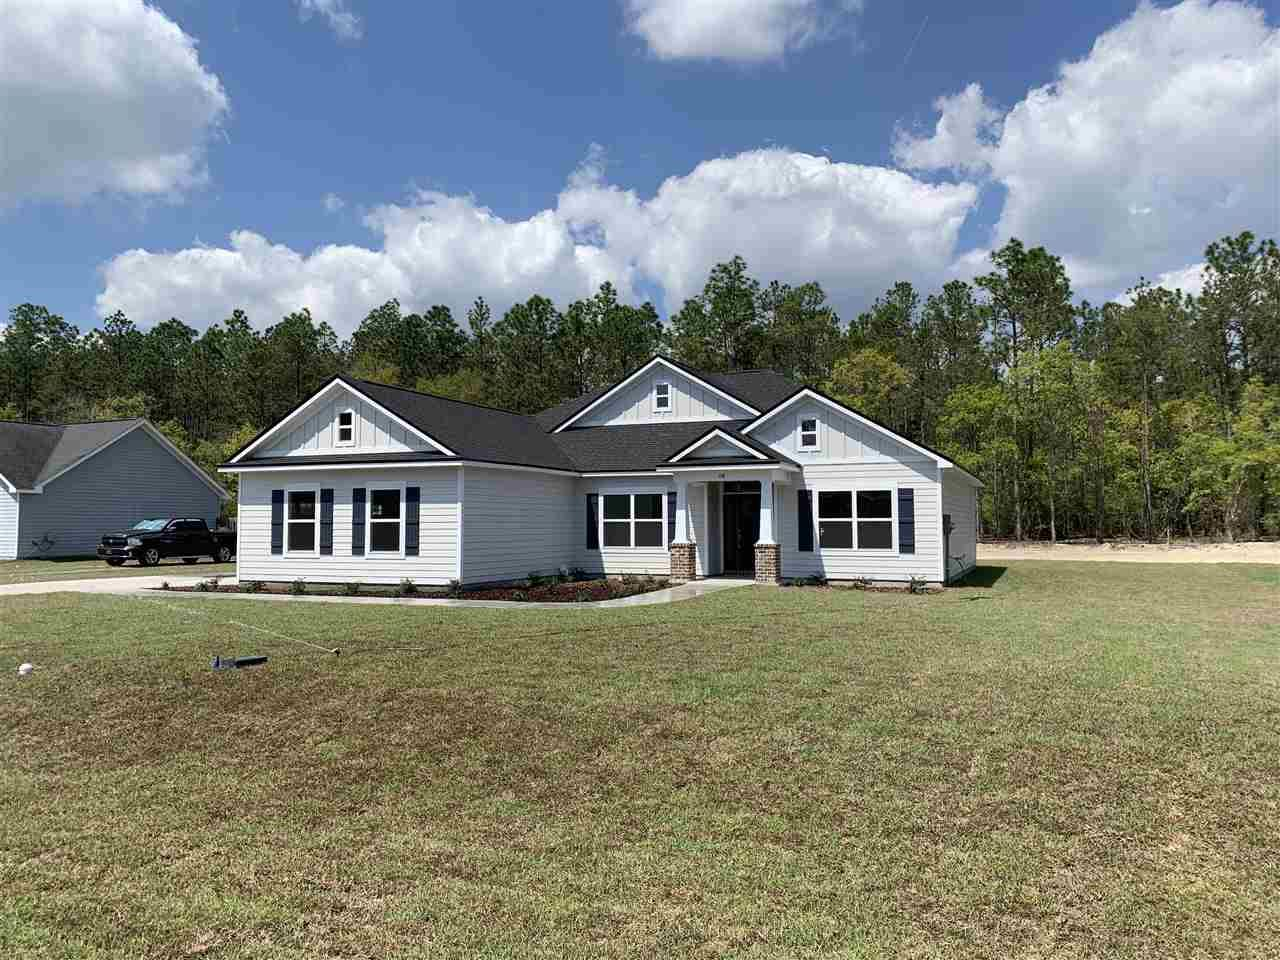 9H Tillis Lane, Crawfordville, FL 32327 - MLS#: 324821